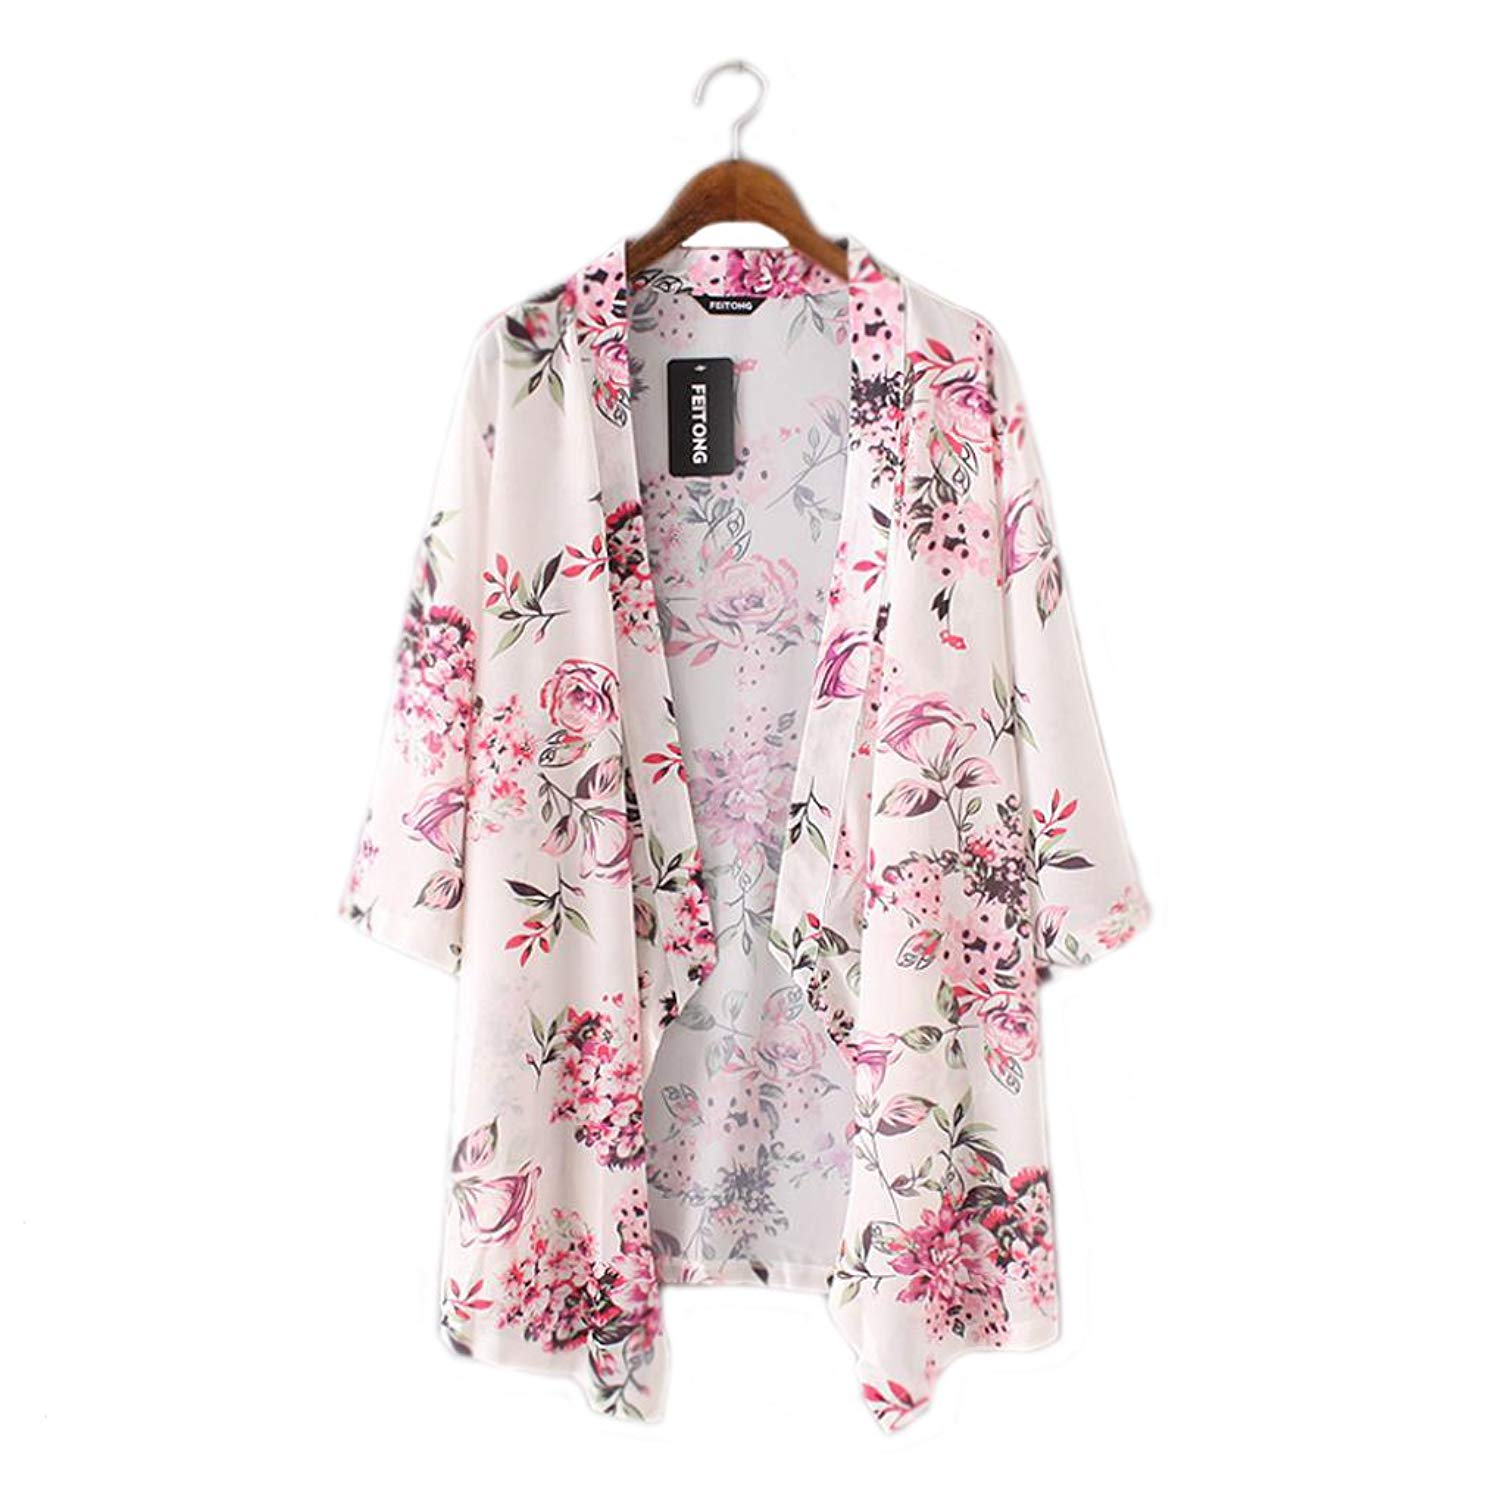 f733b3574b692 Get Quotations · Clearance!Womens Loose Chiffon Semi-Sheer Kimono Blouse  Floral Print Cardigan Tops